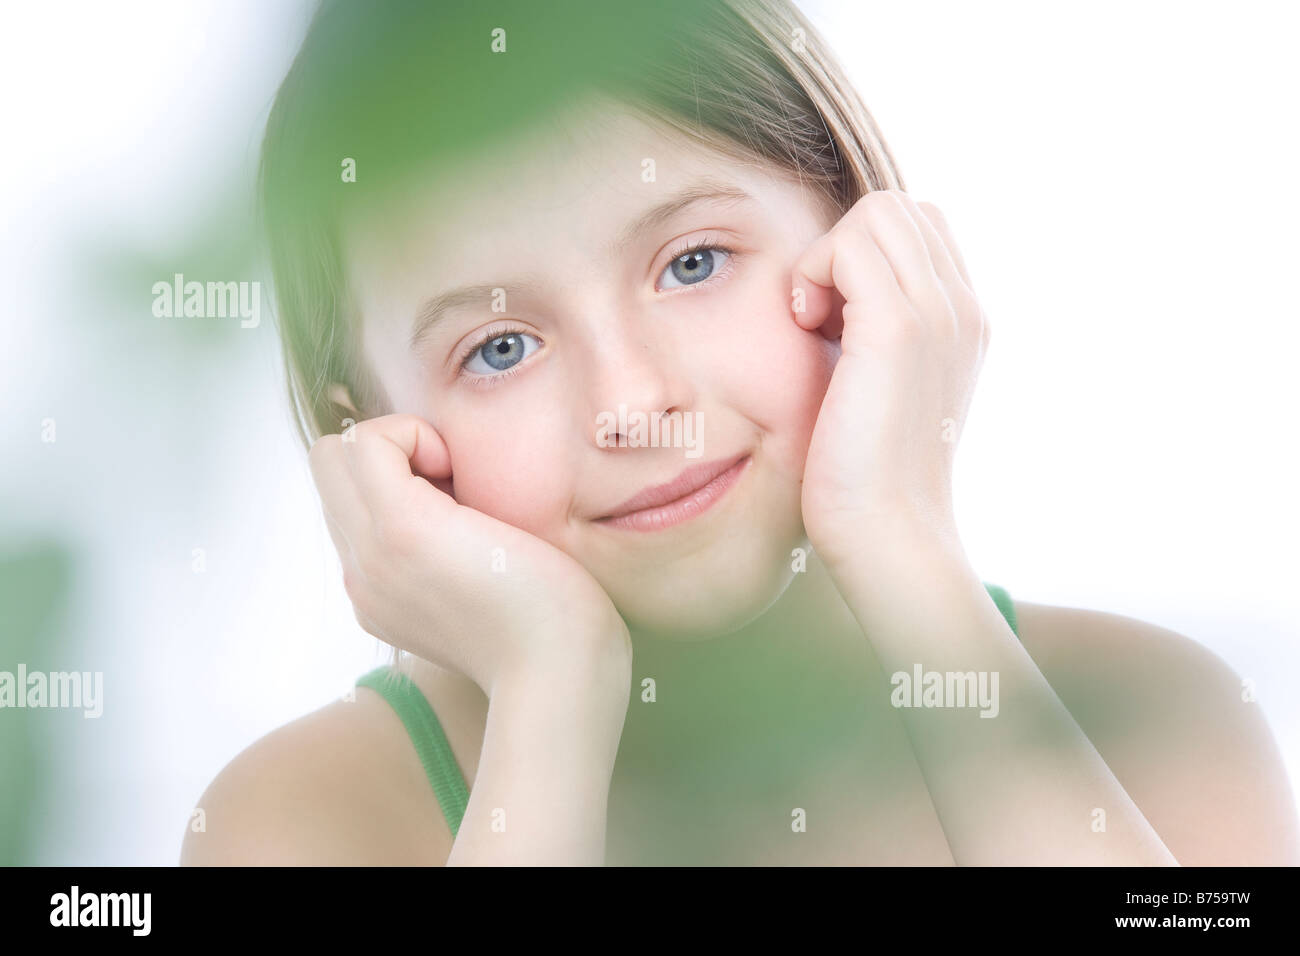 9 year old girl with the green leafs around her, Winnipeg, Manitoba - Stock Image